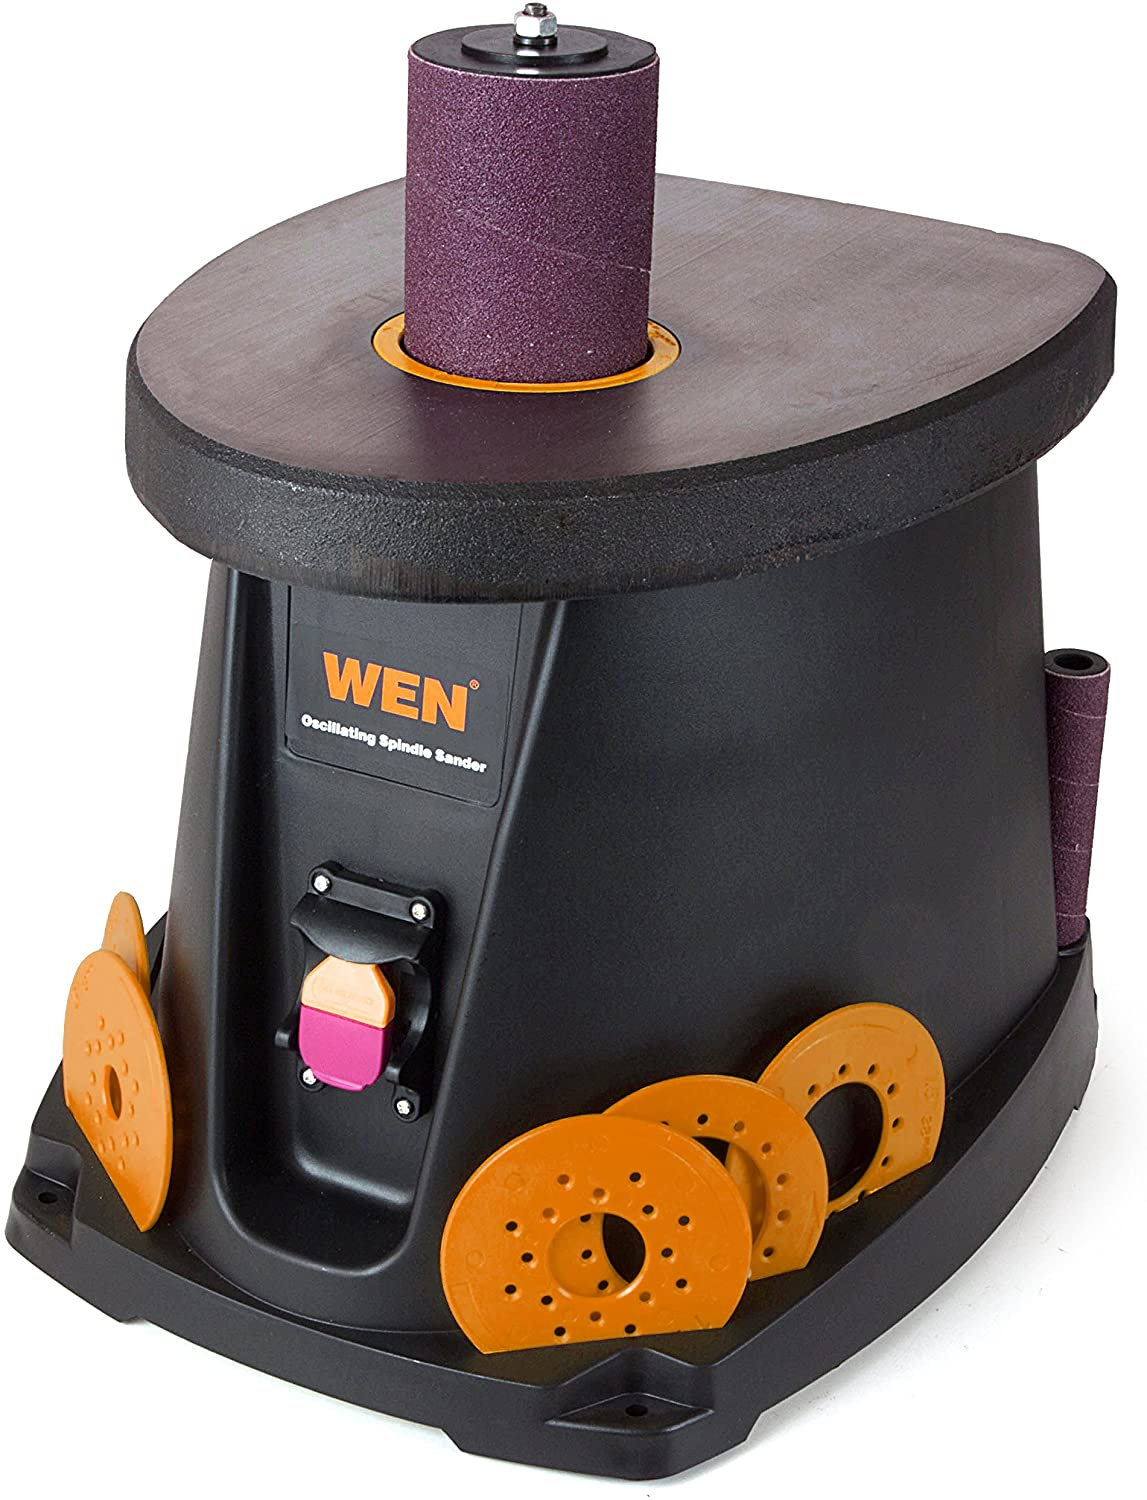 WEN 6510T Oscillating Spindle Sander